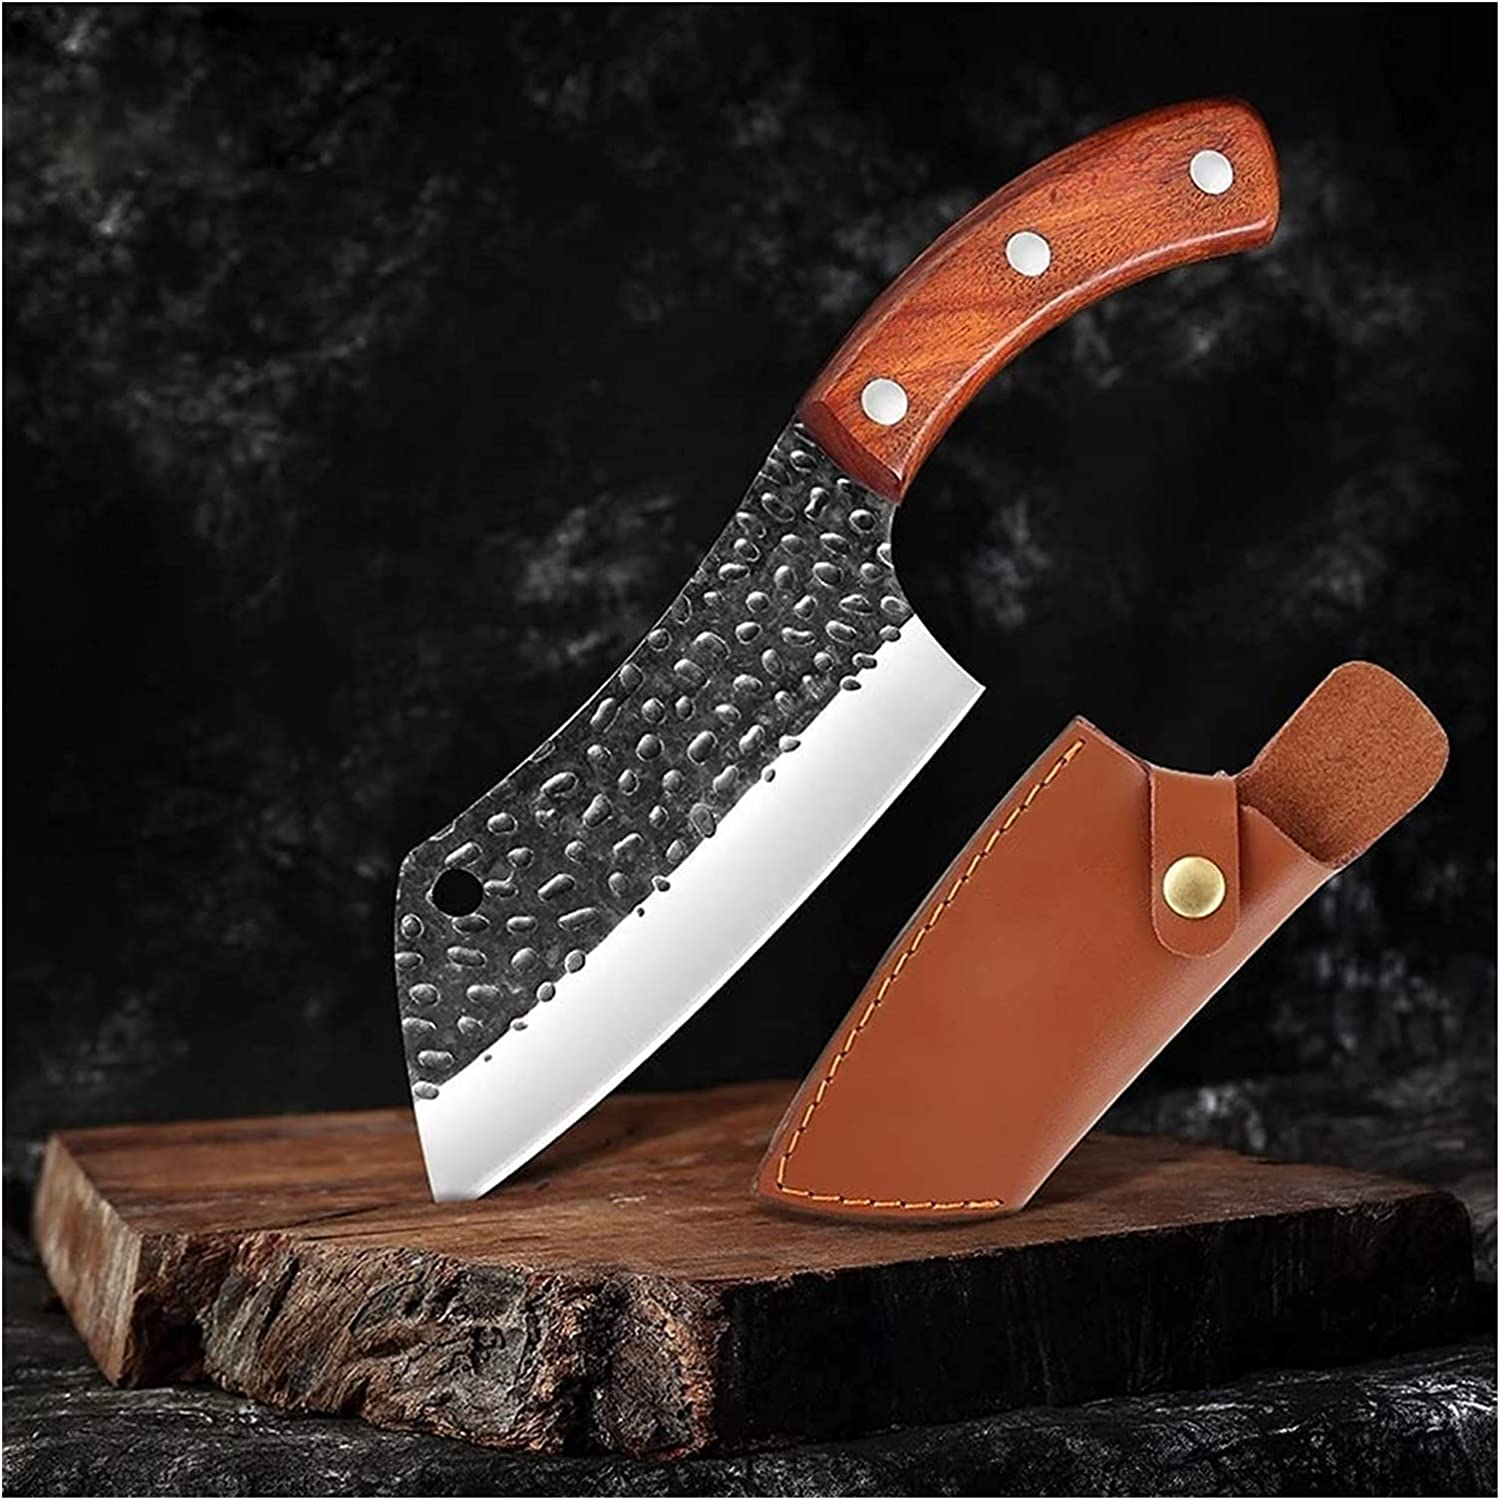 Meat Cleaver Luxury goods Kitchen Handmade Max 62% OFF Knife Forged